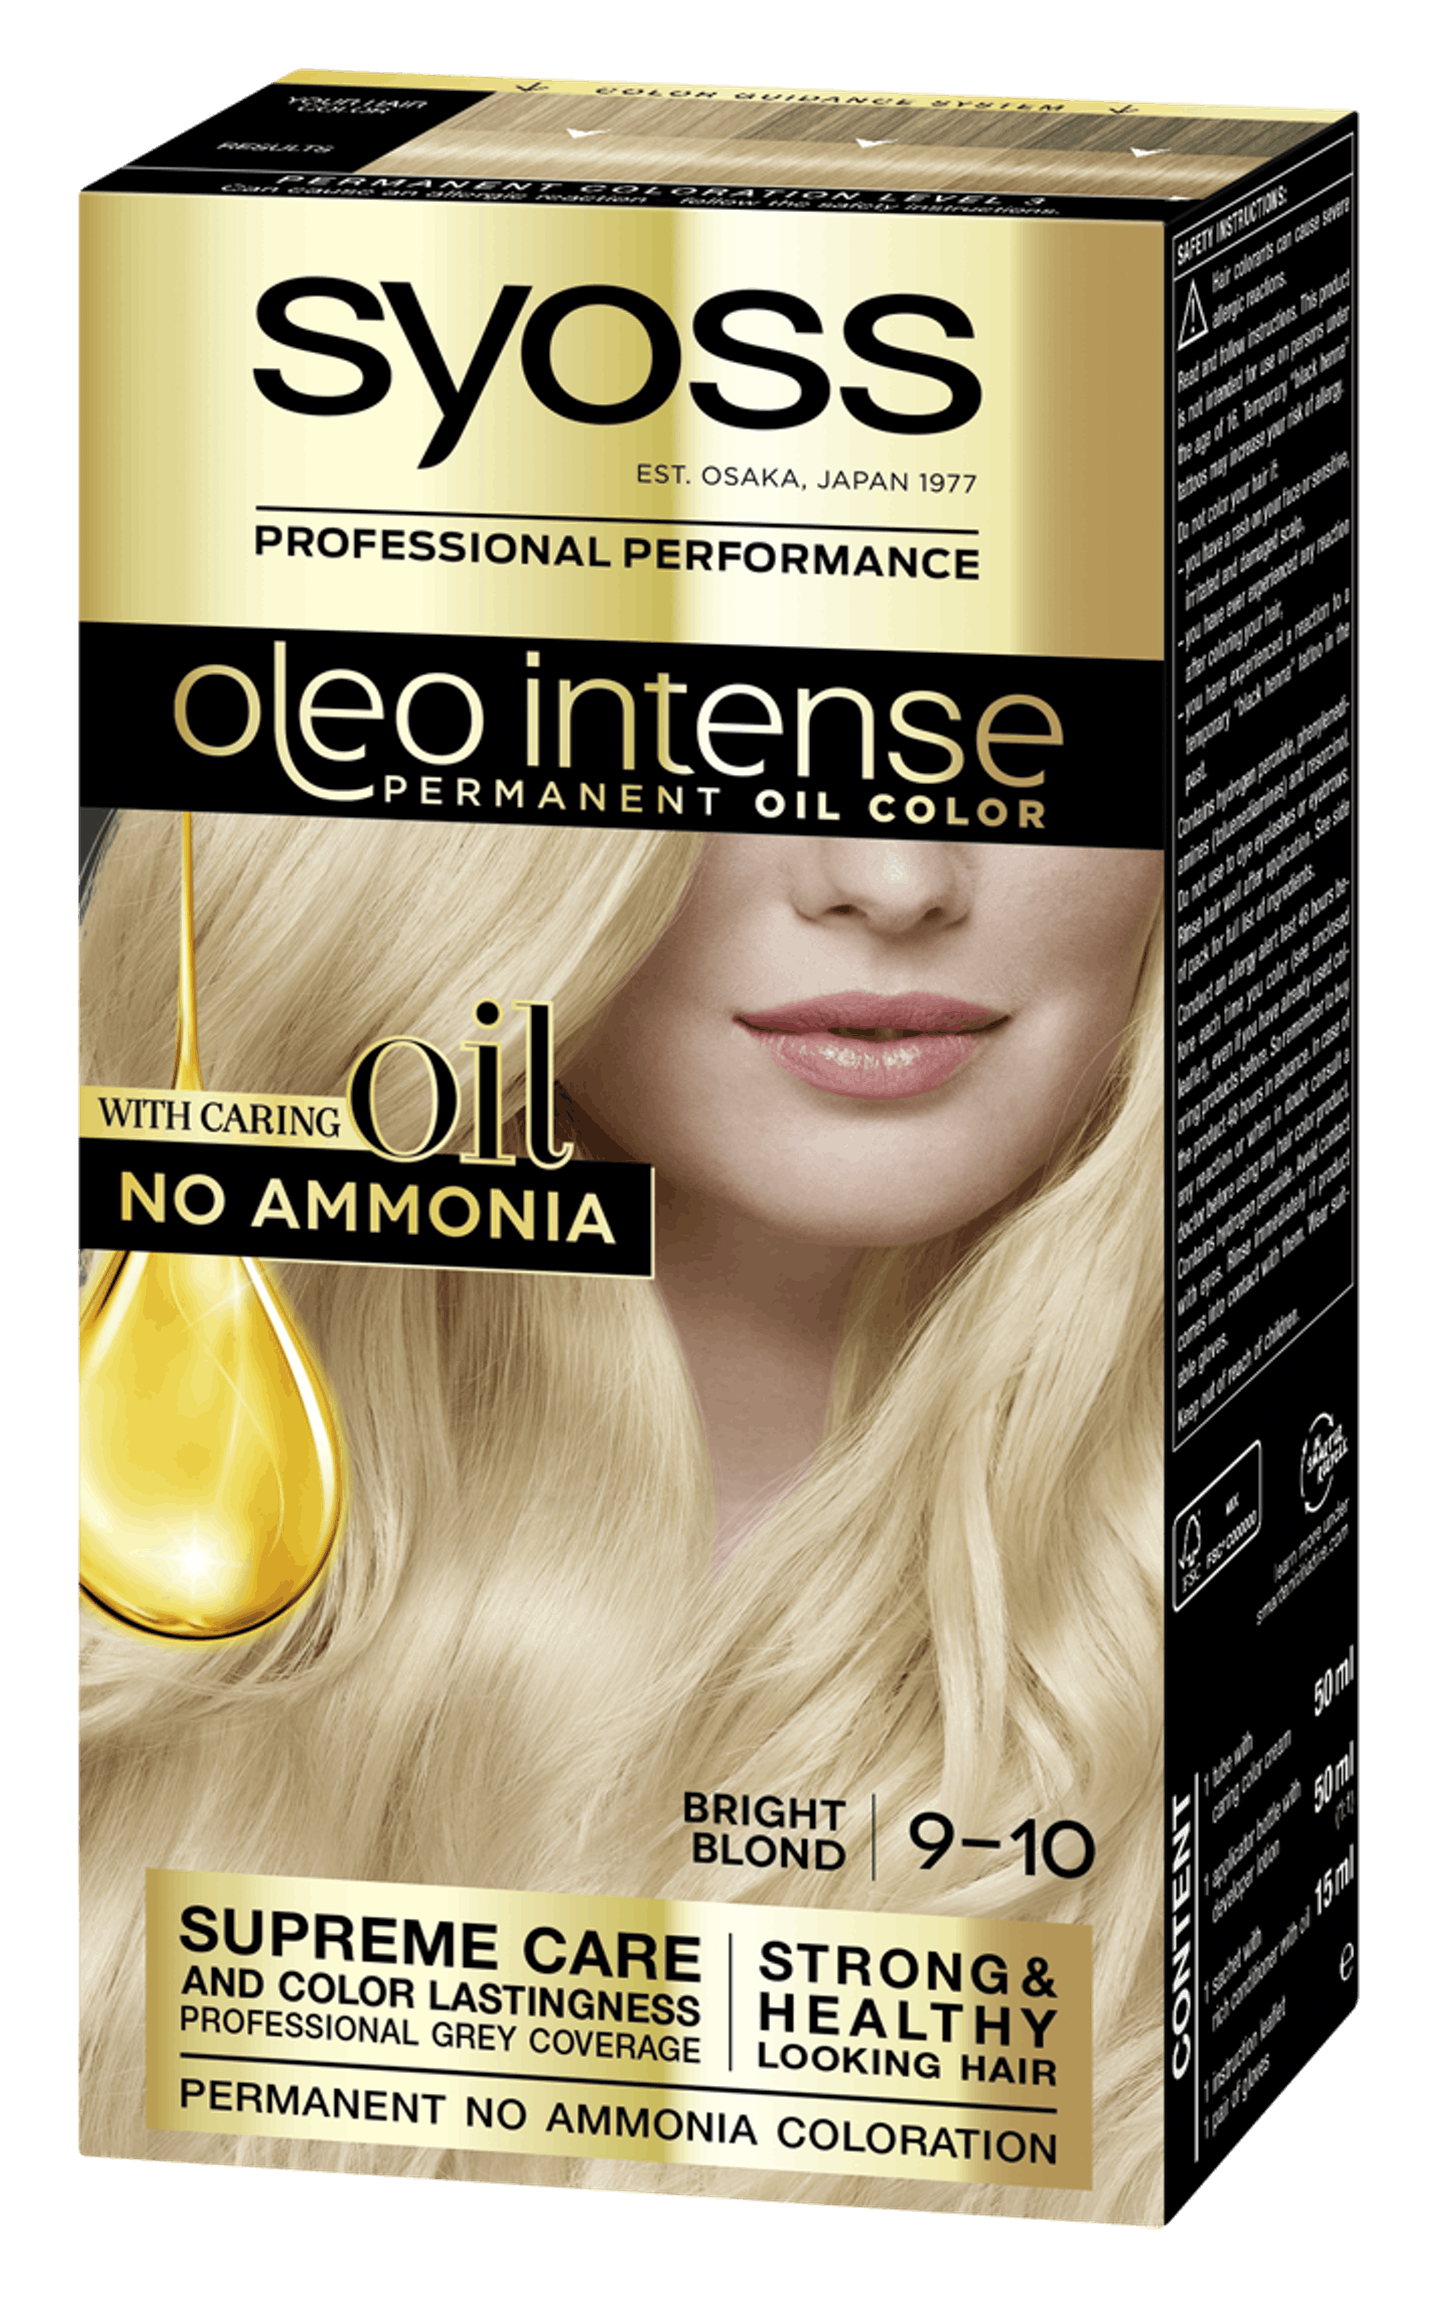 Syoss Oleo Intense Permanent Oil Color 9-10 Bright Blond